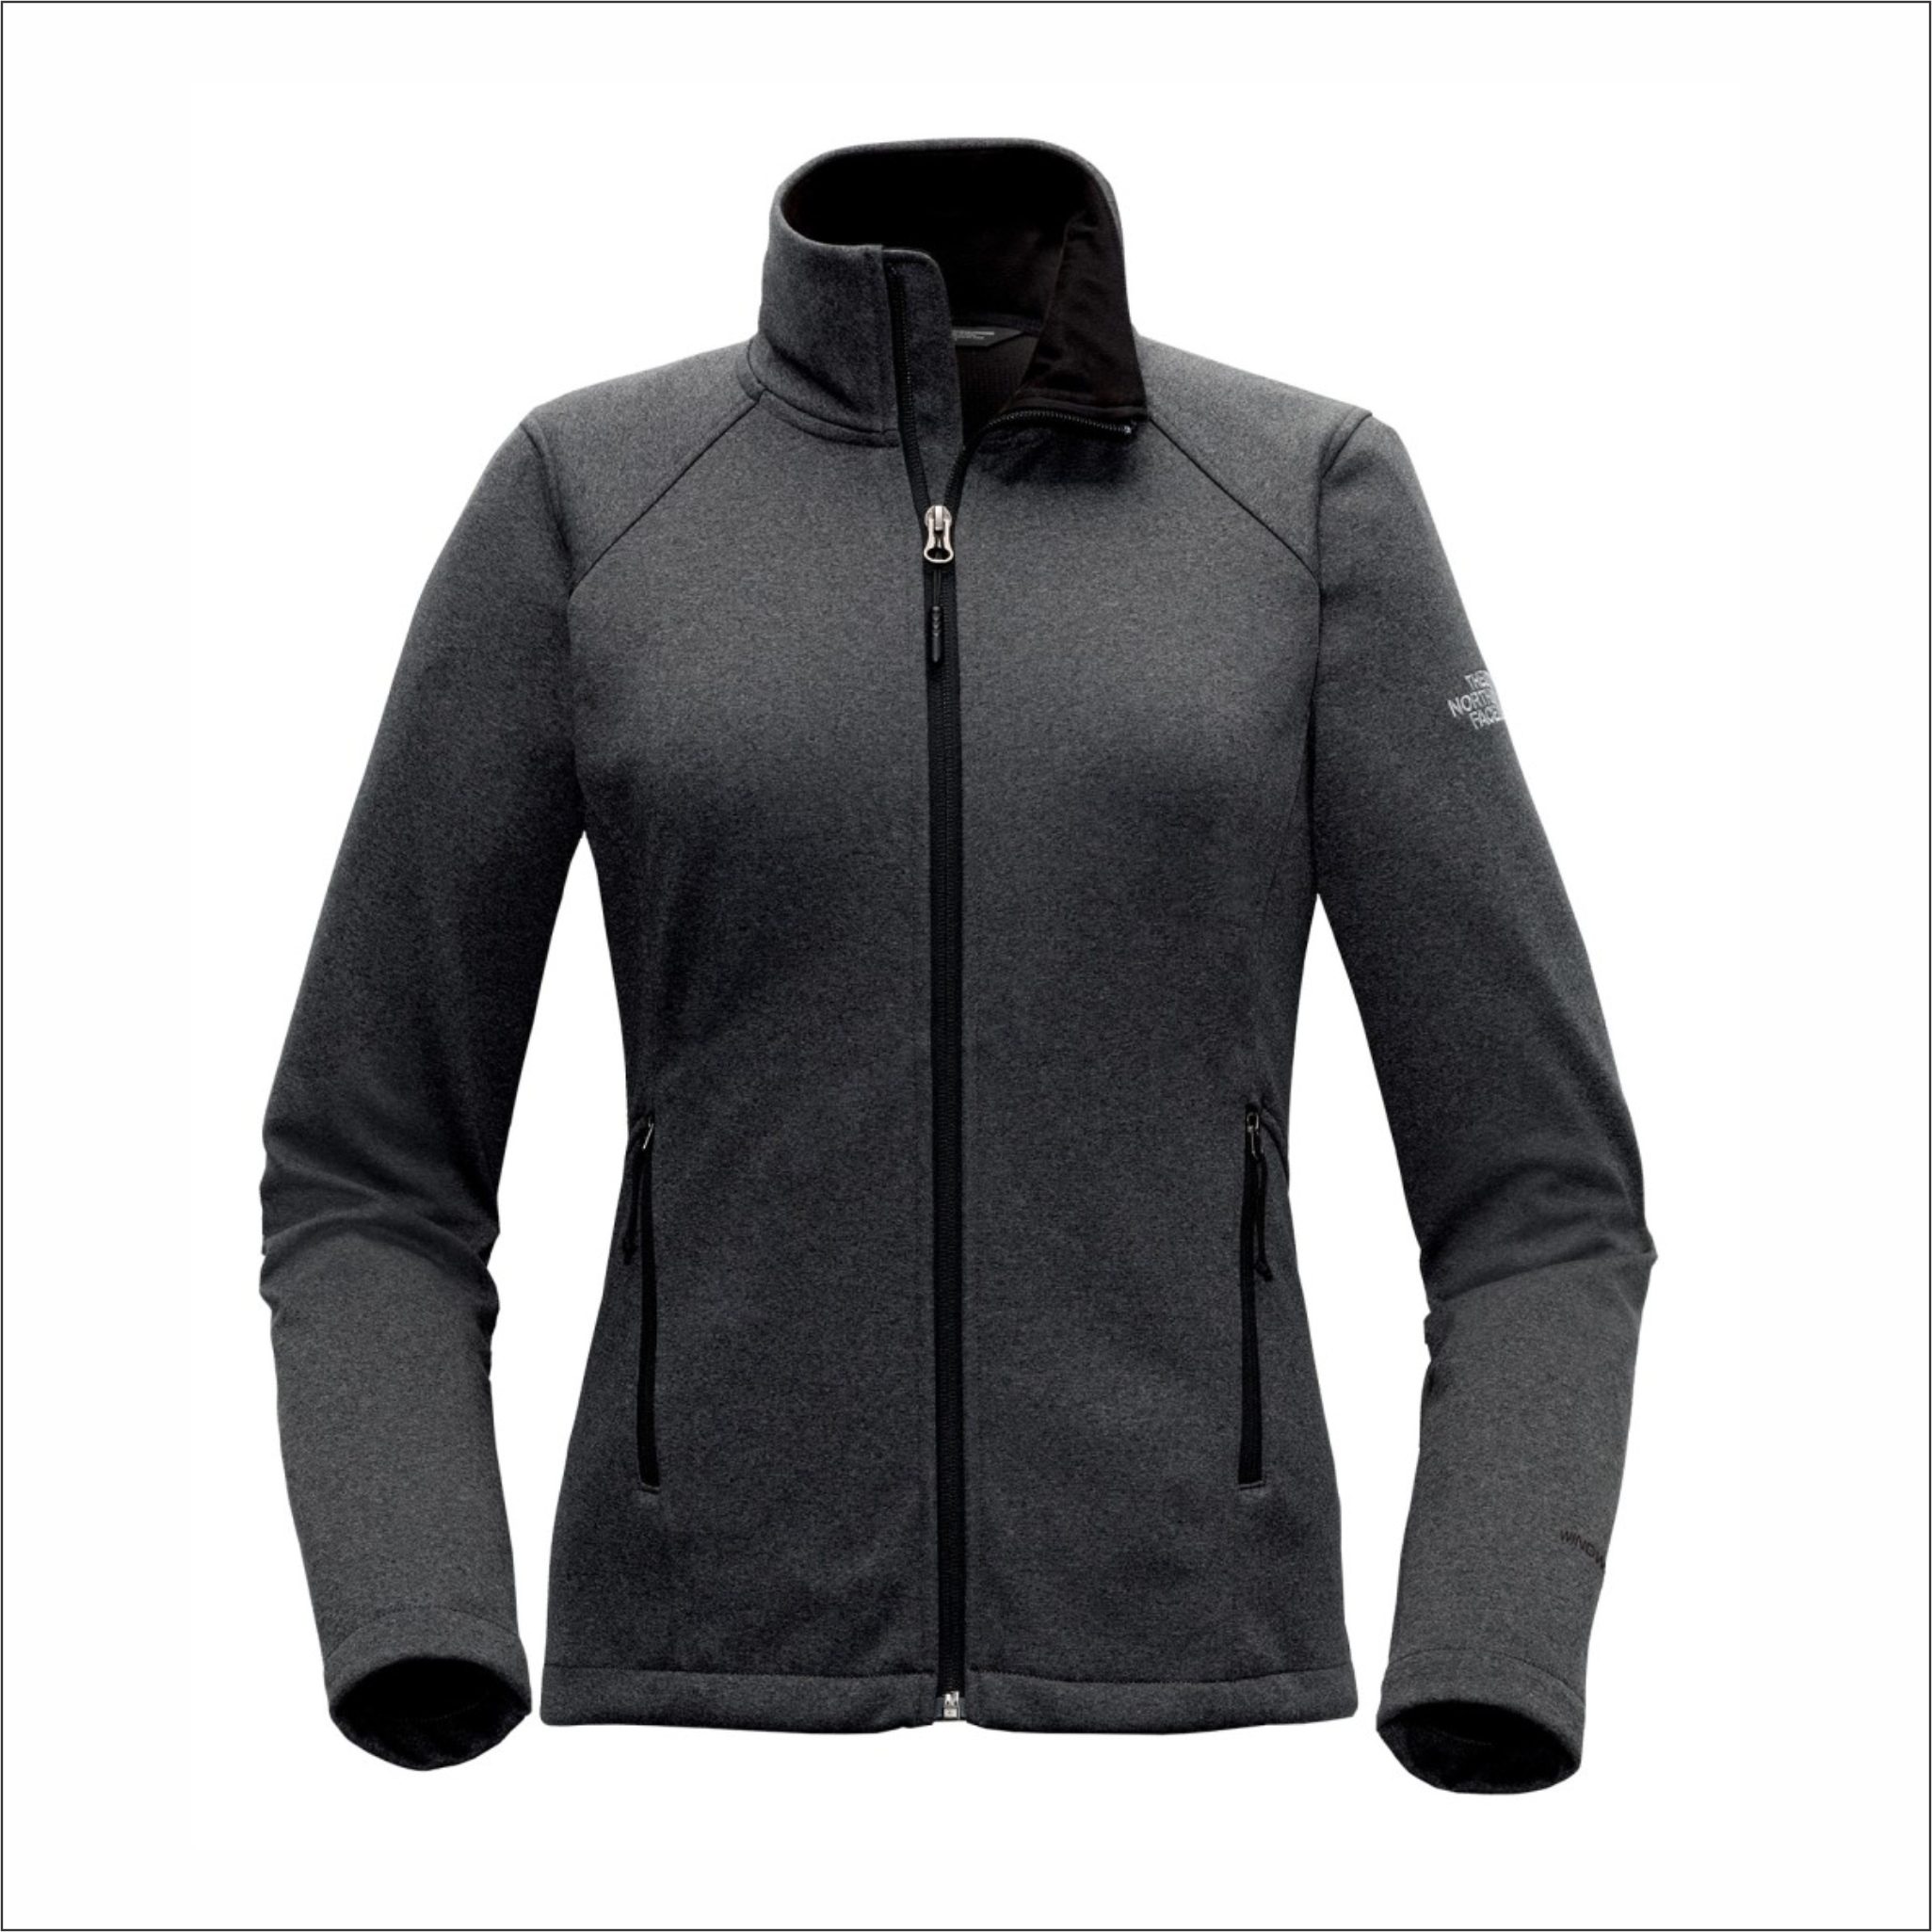 The North Face Ladies Jacket - Ridgeline - NF0A3LGY